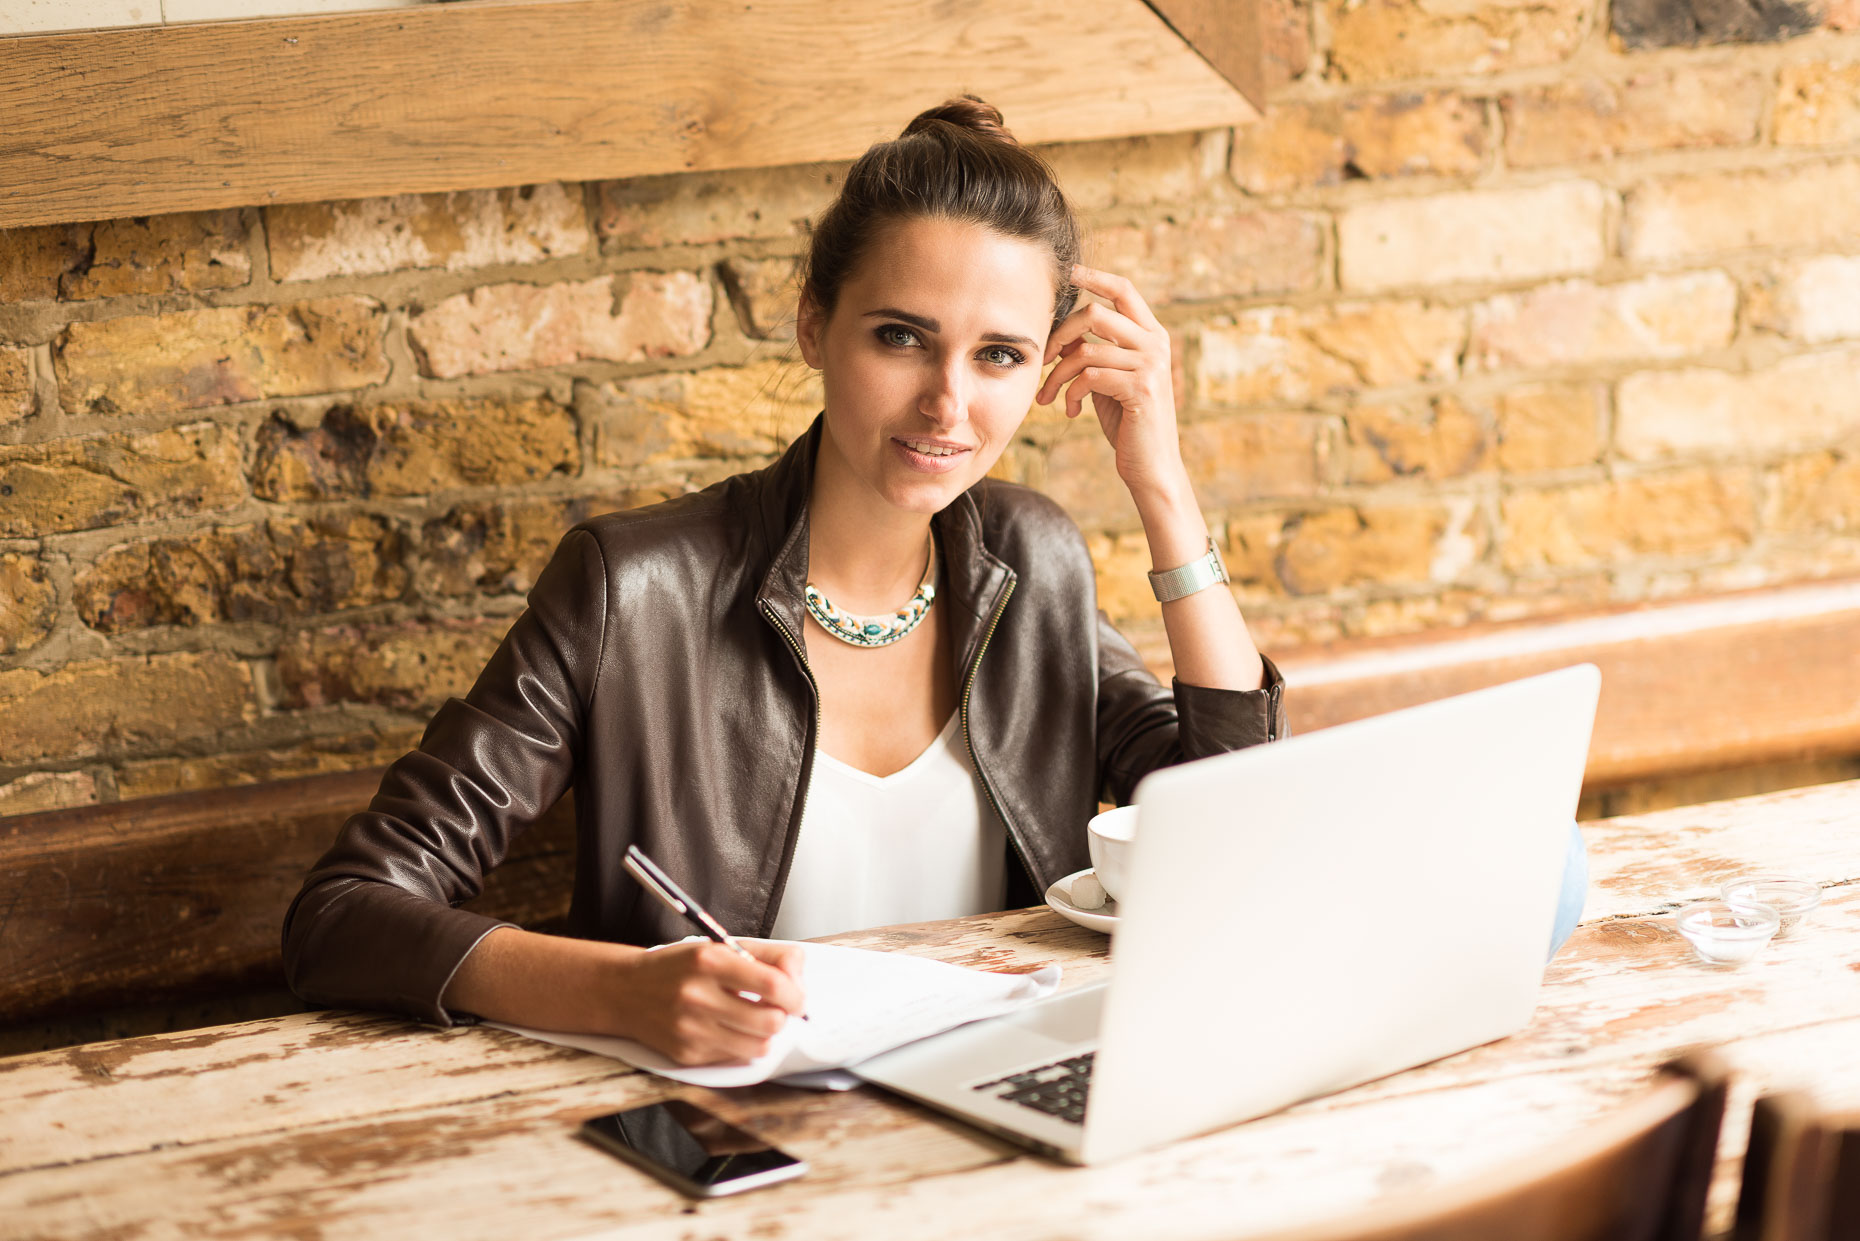 beautiful-woman-sitting-working-laptop-cafe-notes-islington-london-business-photographer-10